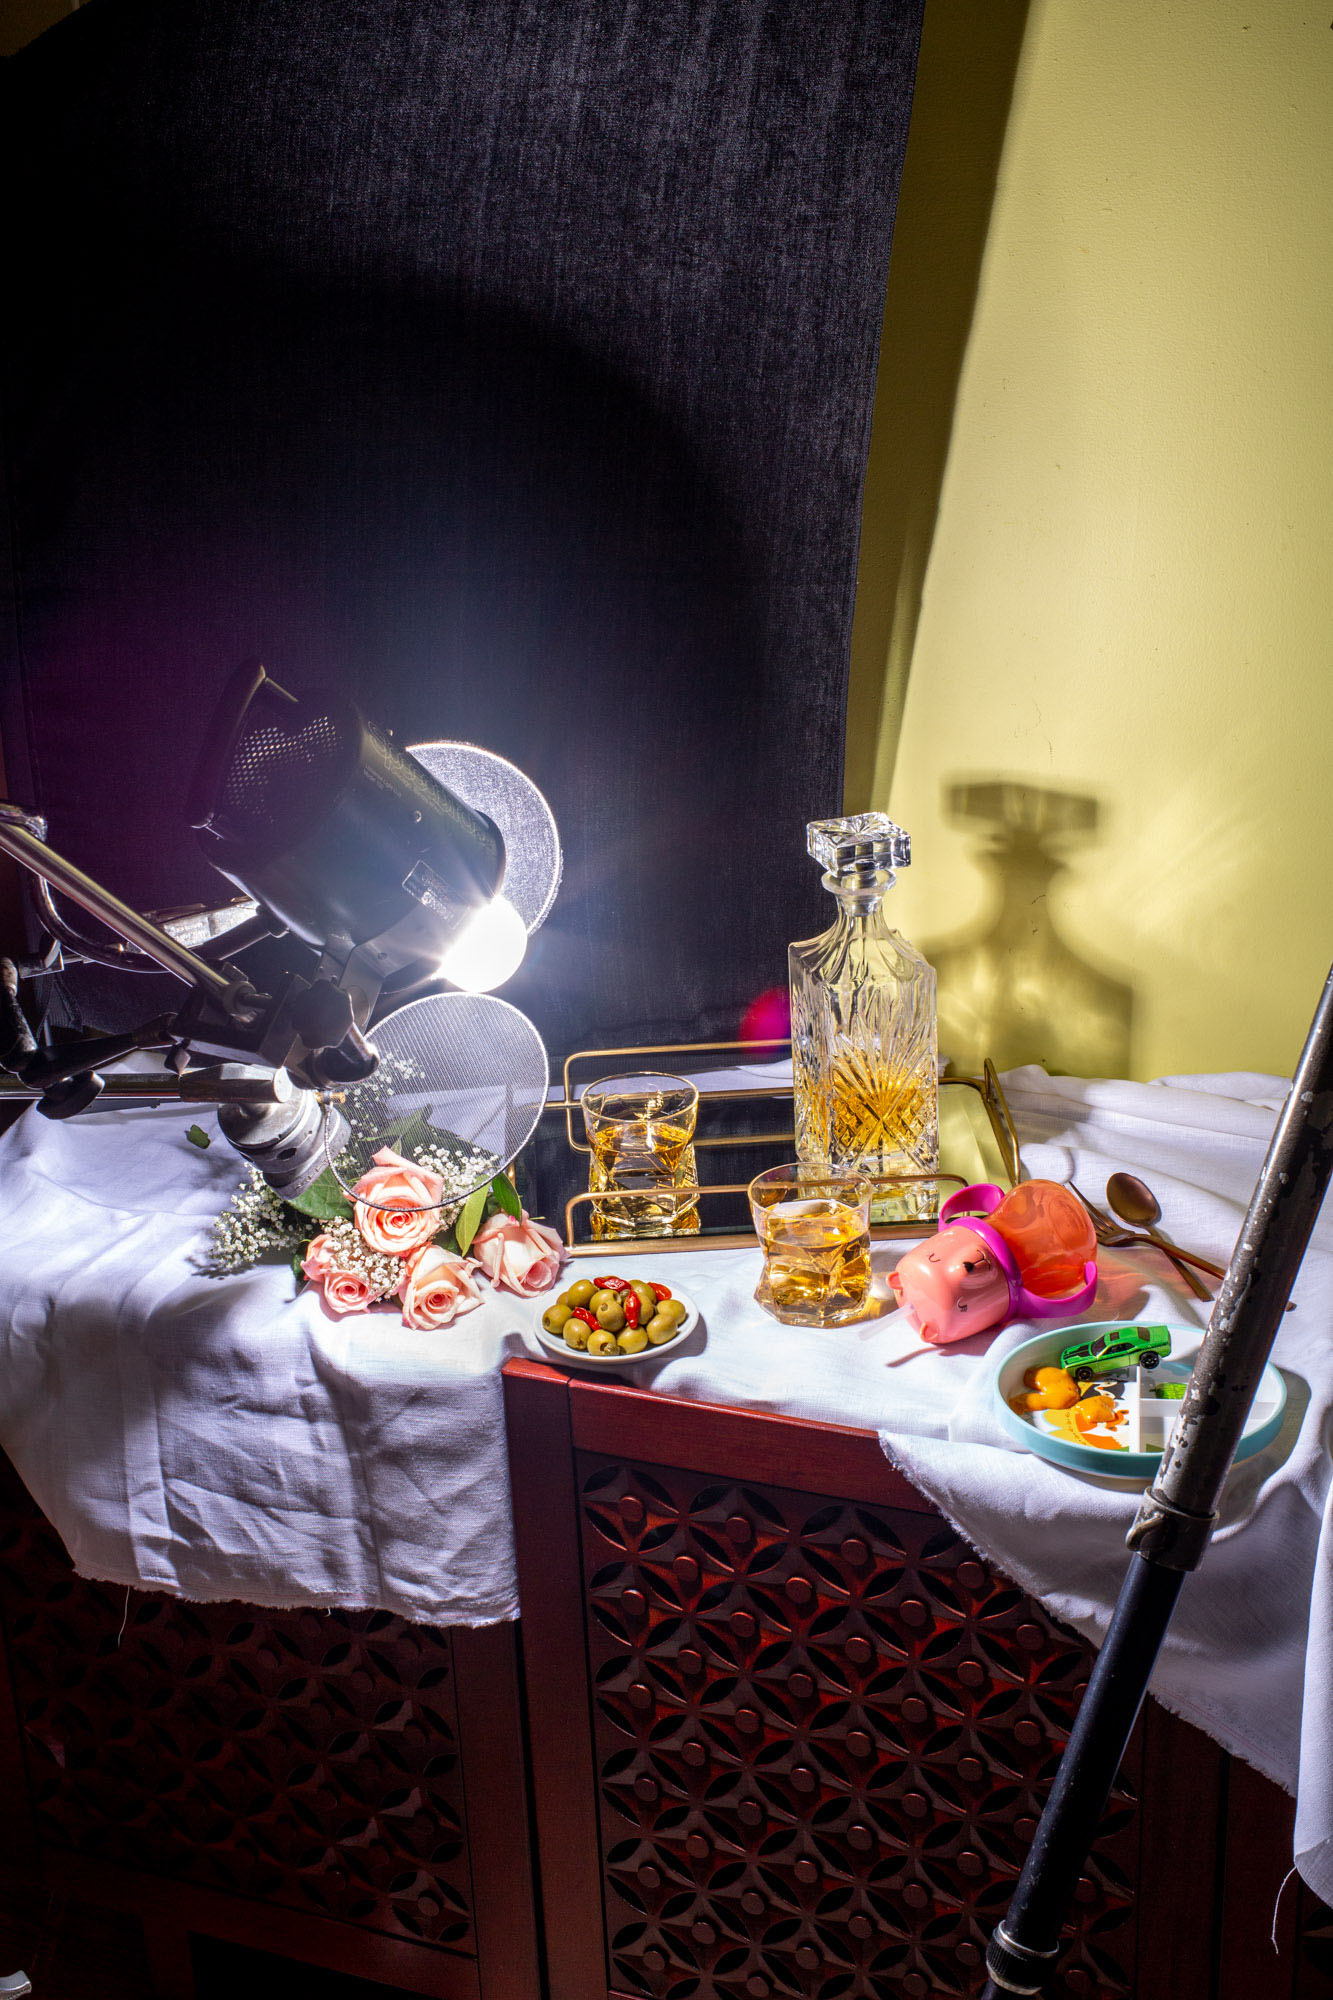 behind the scenes view of creative food photography